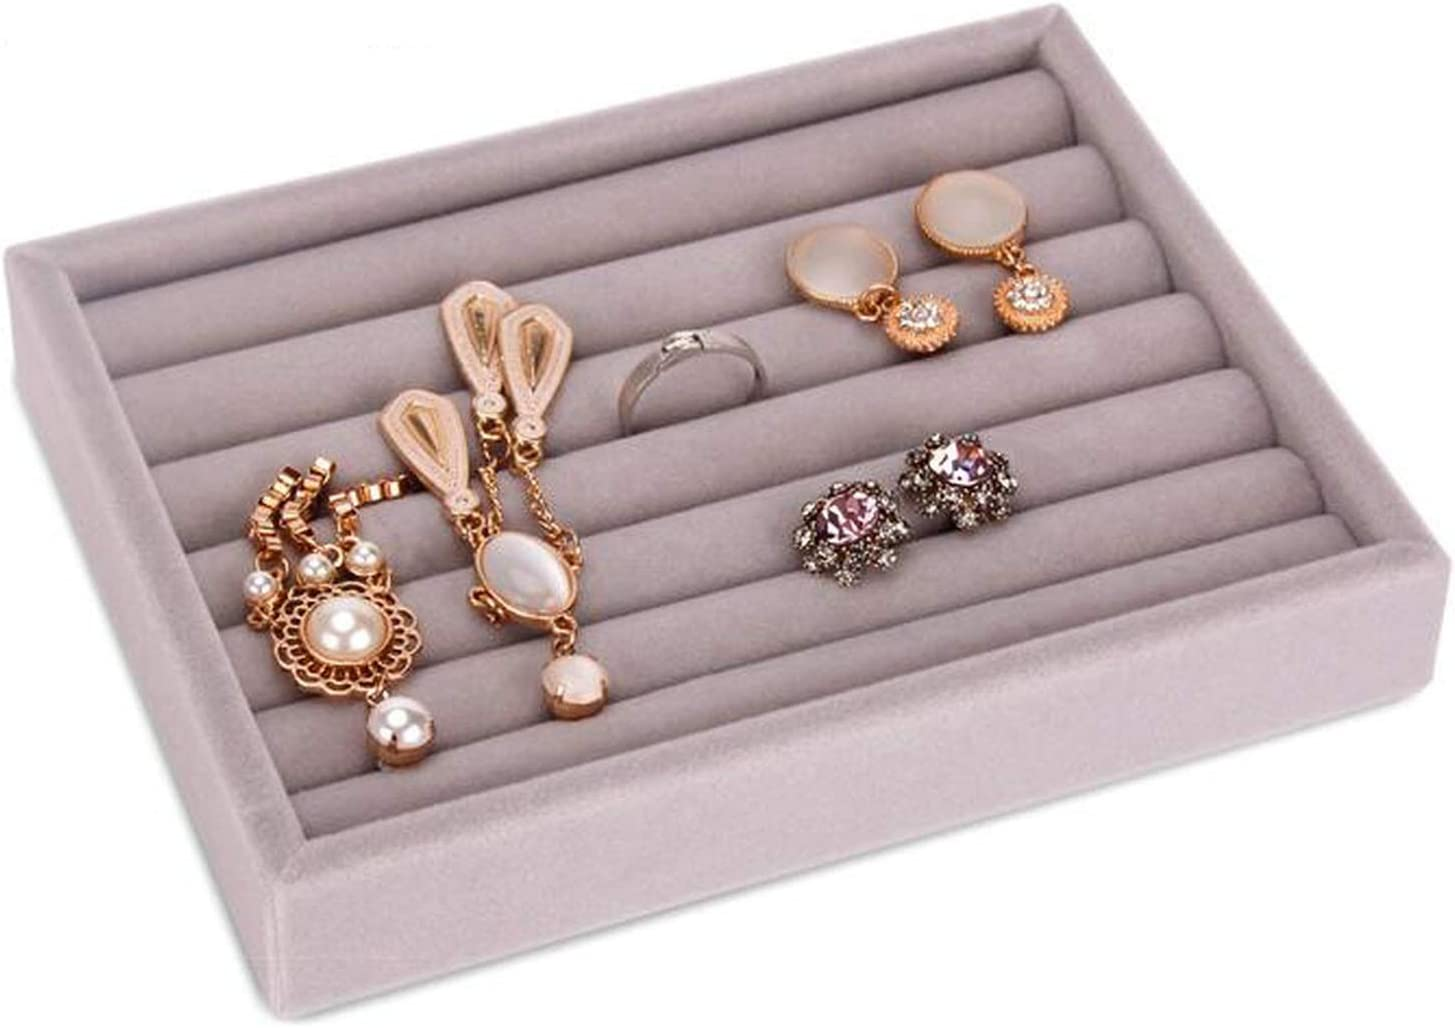 Amazon Com Drawer Diy Jewelry Storage Tray Ring Bracelet Gift Box Jewellery Organizer Small Size Fit Most Room Space Ring Tray Home Kitchen